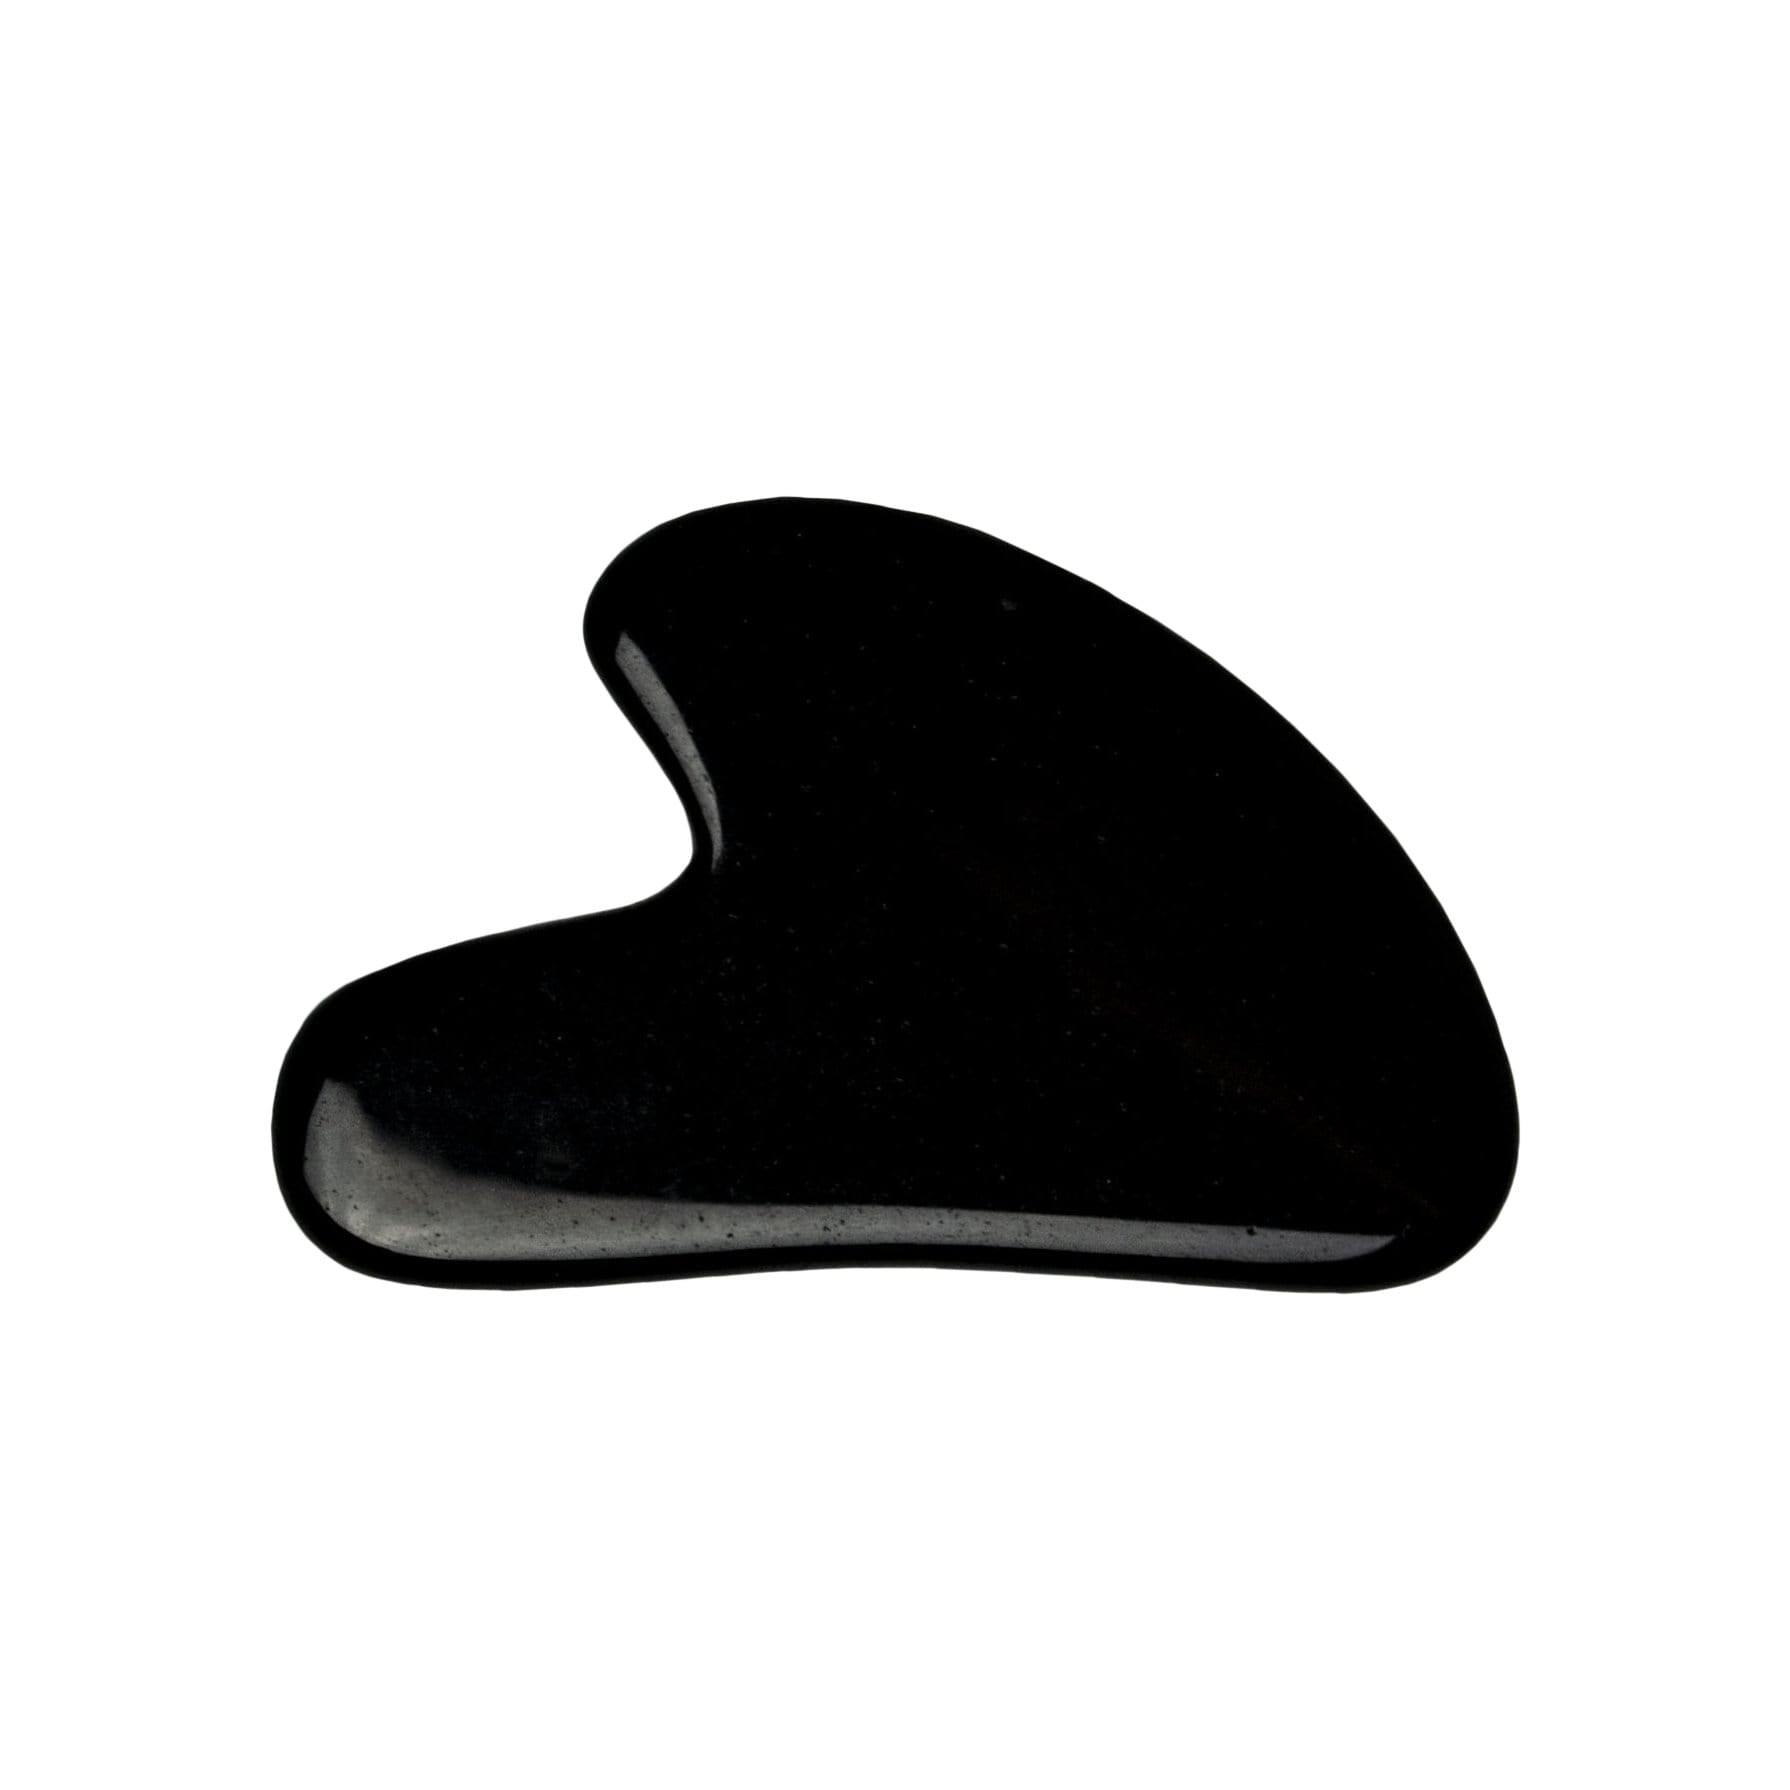 Alder New York Face Black Obsidian Gua Sha Massage Stone